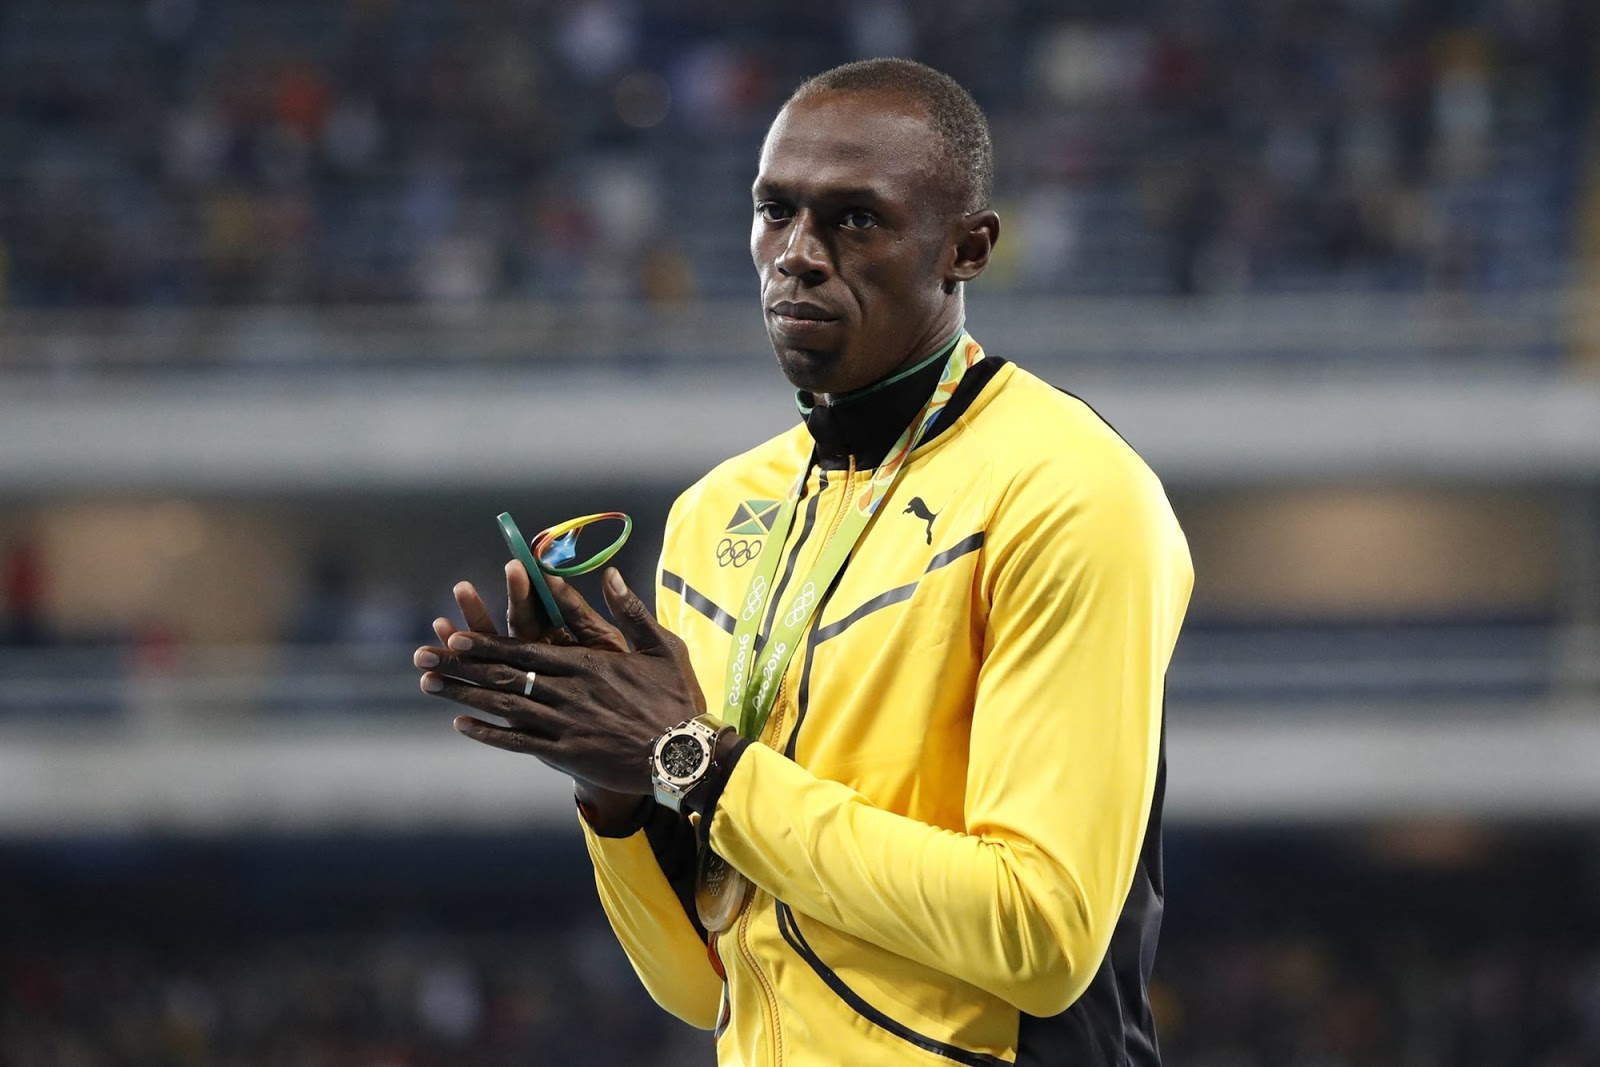 Usain Bolt, The Fastest Man Alive, Tests Positive For Coronavirus